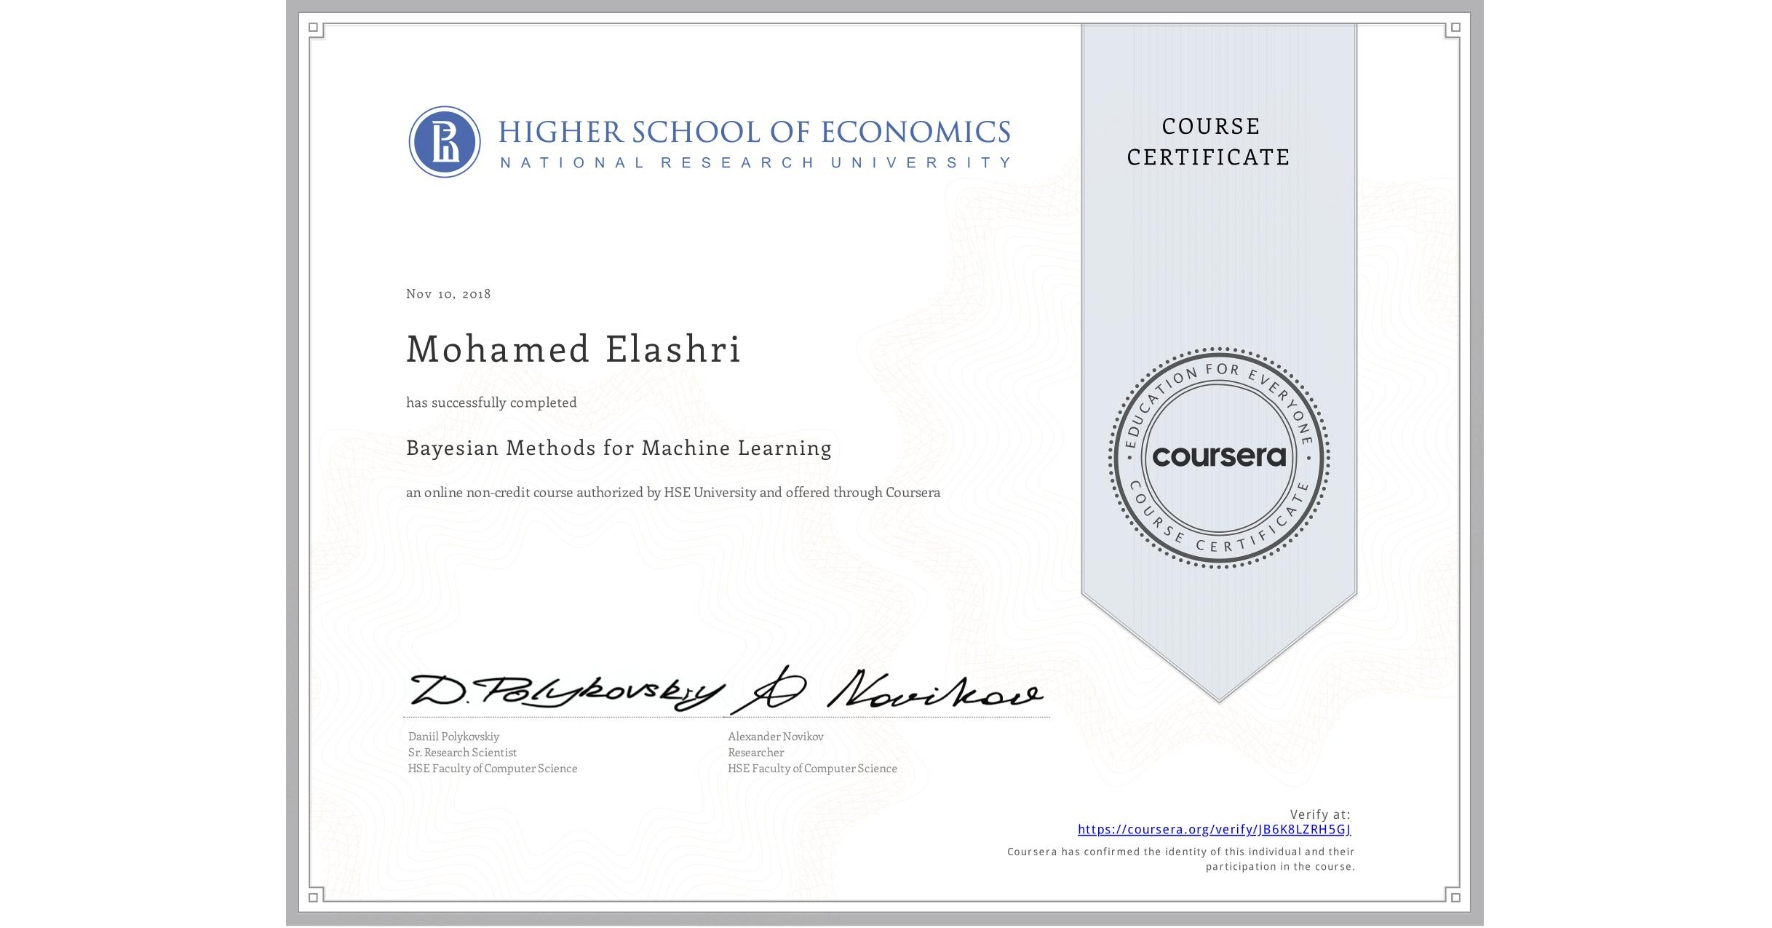 View certificate for Mohamed Elashri, Bayesian Methods for Machine Learning, an online non-credit course authorized by National Research University Higher School of Economics and offered through Coursera